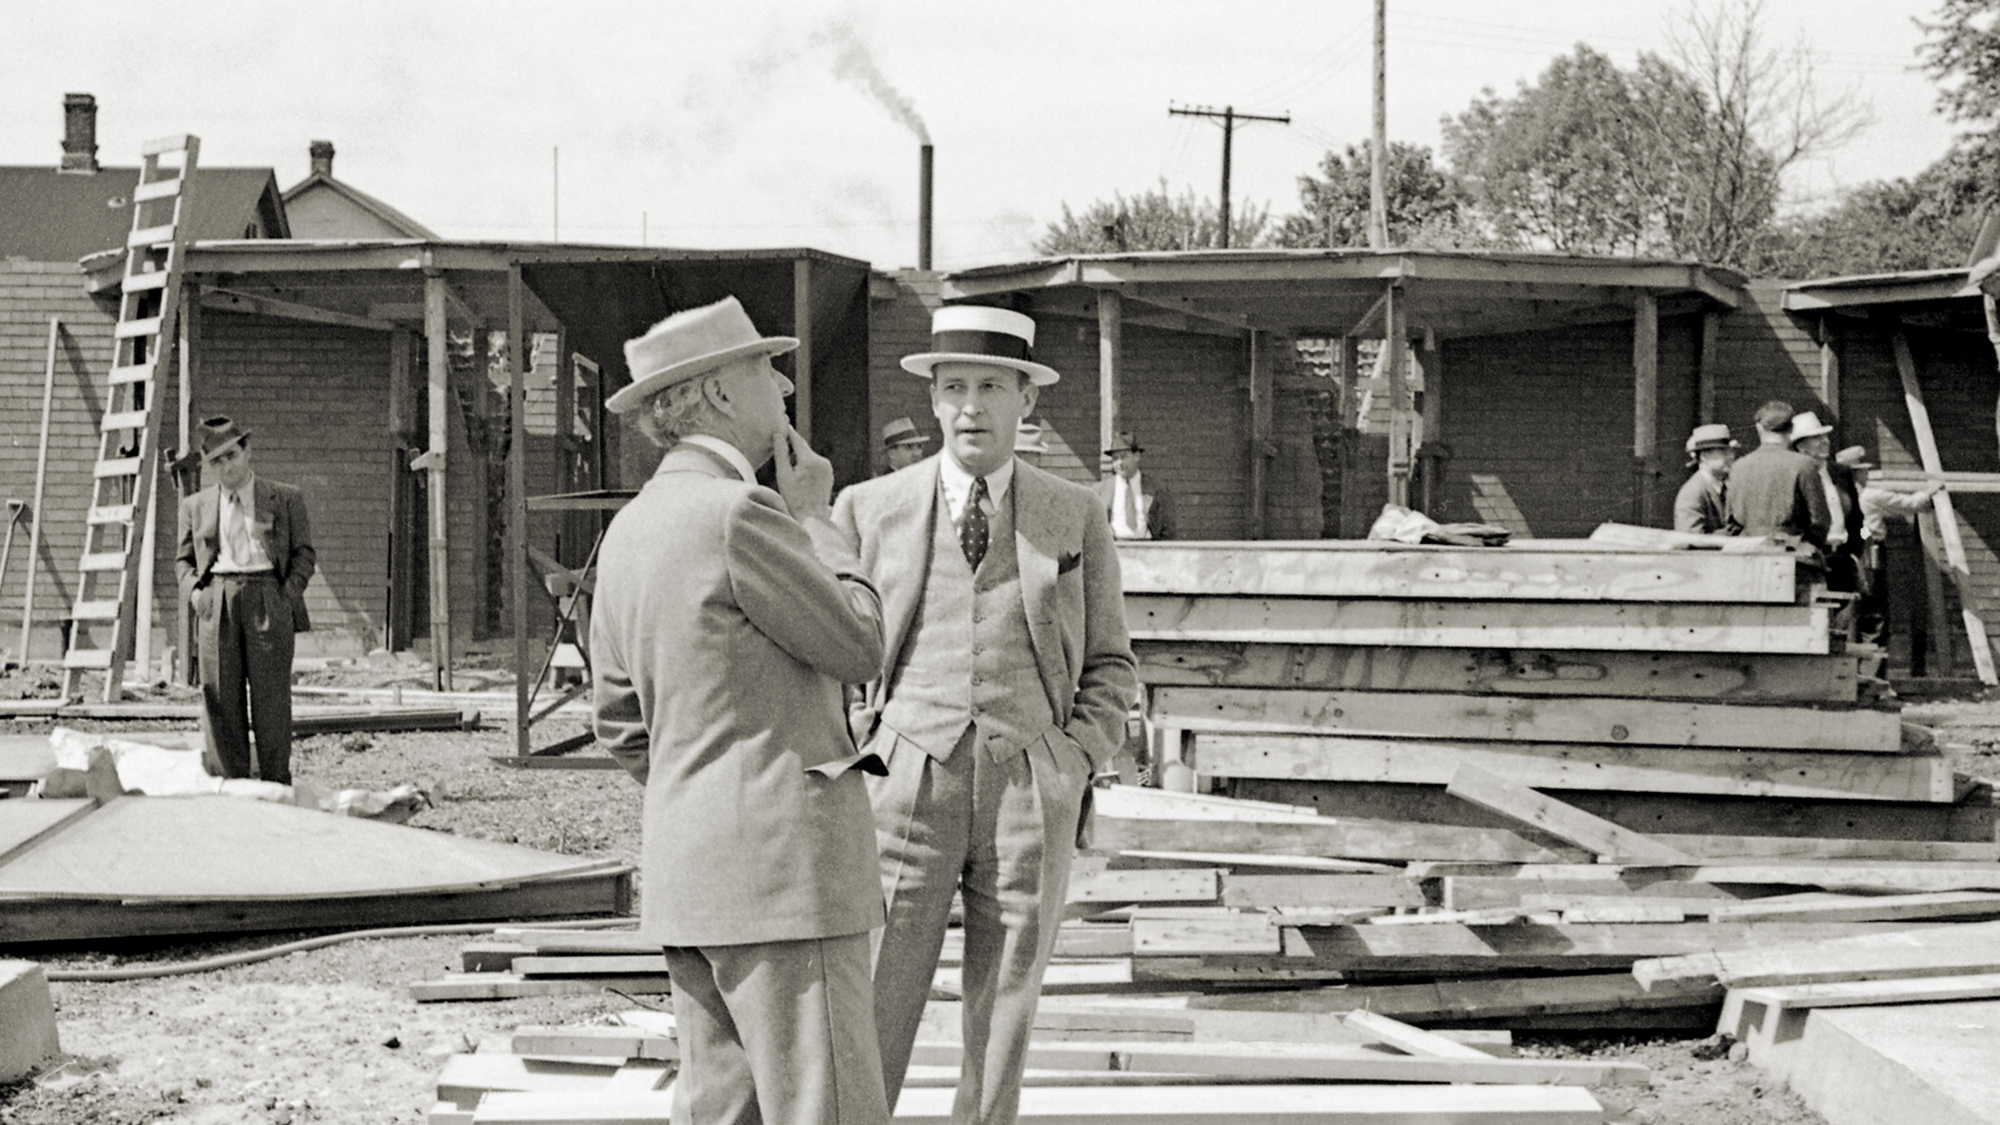 H.F. Johnson, Jr. dan Frank Lloyd Wright, di SC Johnson